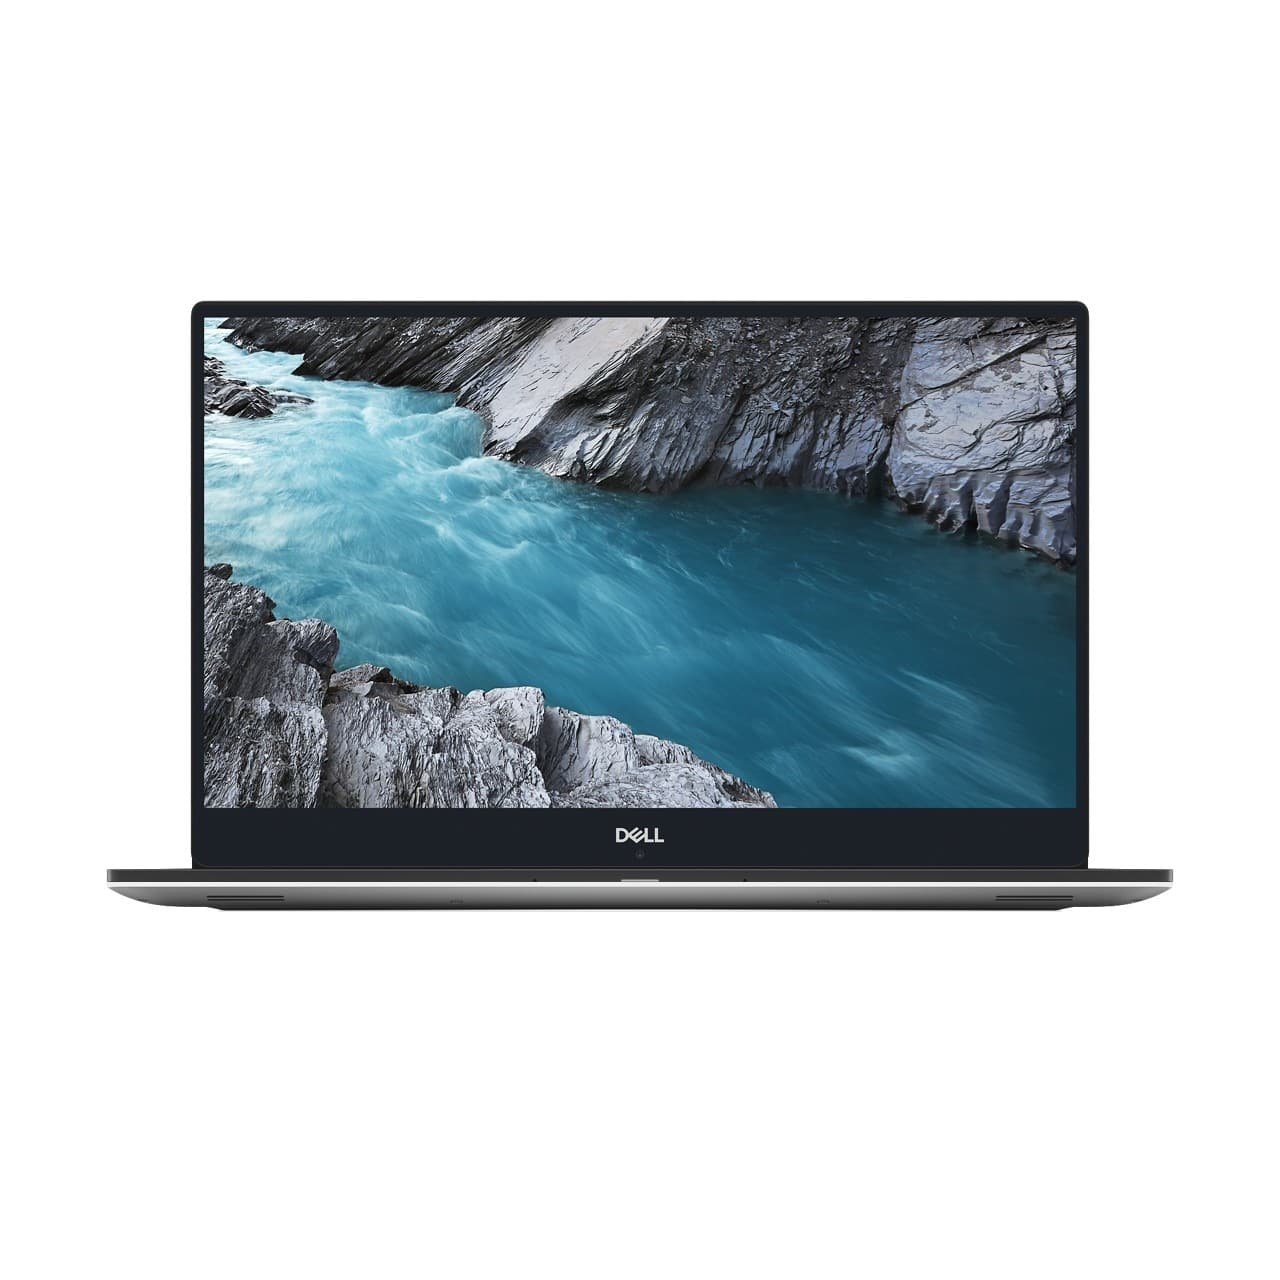 Dell XPS 15 - 9570, 4K, 16gb RAM, 512gb (New from Dell Outlet) $1398